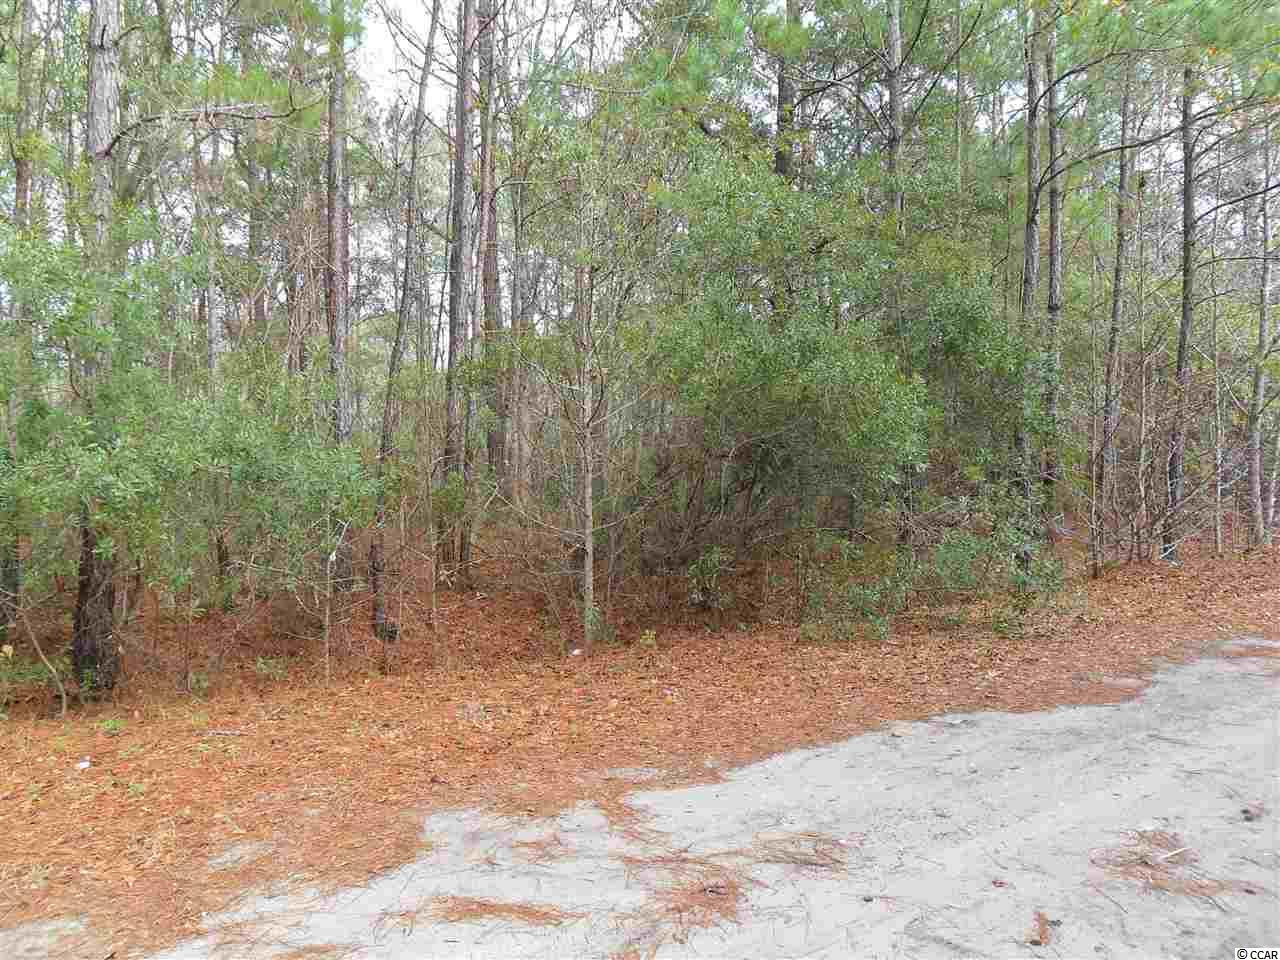 THIS IS LOT #2, WHICH IS ONE OF THREE LOTS IN A LARGER PARCEL, THAT ARE ALL FOR SALE.*See Documents for a portion of the Plat* THE LOT IS NON-BUILDABLE UNTIL CONDITIONS OF THE GEORGETOWN COUNTY WATER AND SEWER DISTRICT EXTENSION POLICY ARE MET. TAP-IN-FEES MUST BE PAID BY PURCHASER. Square footage/acreage is approximate and not guaranteed. Buyer is responsible for verification.